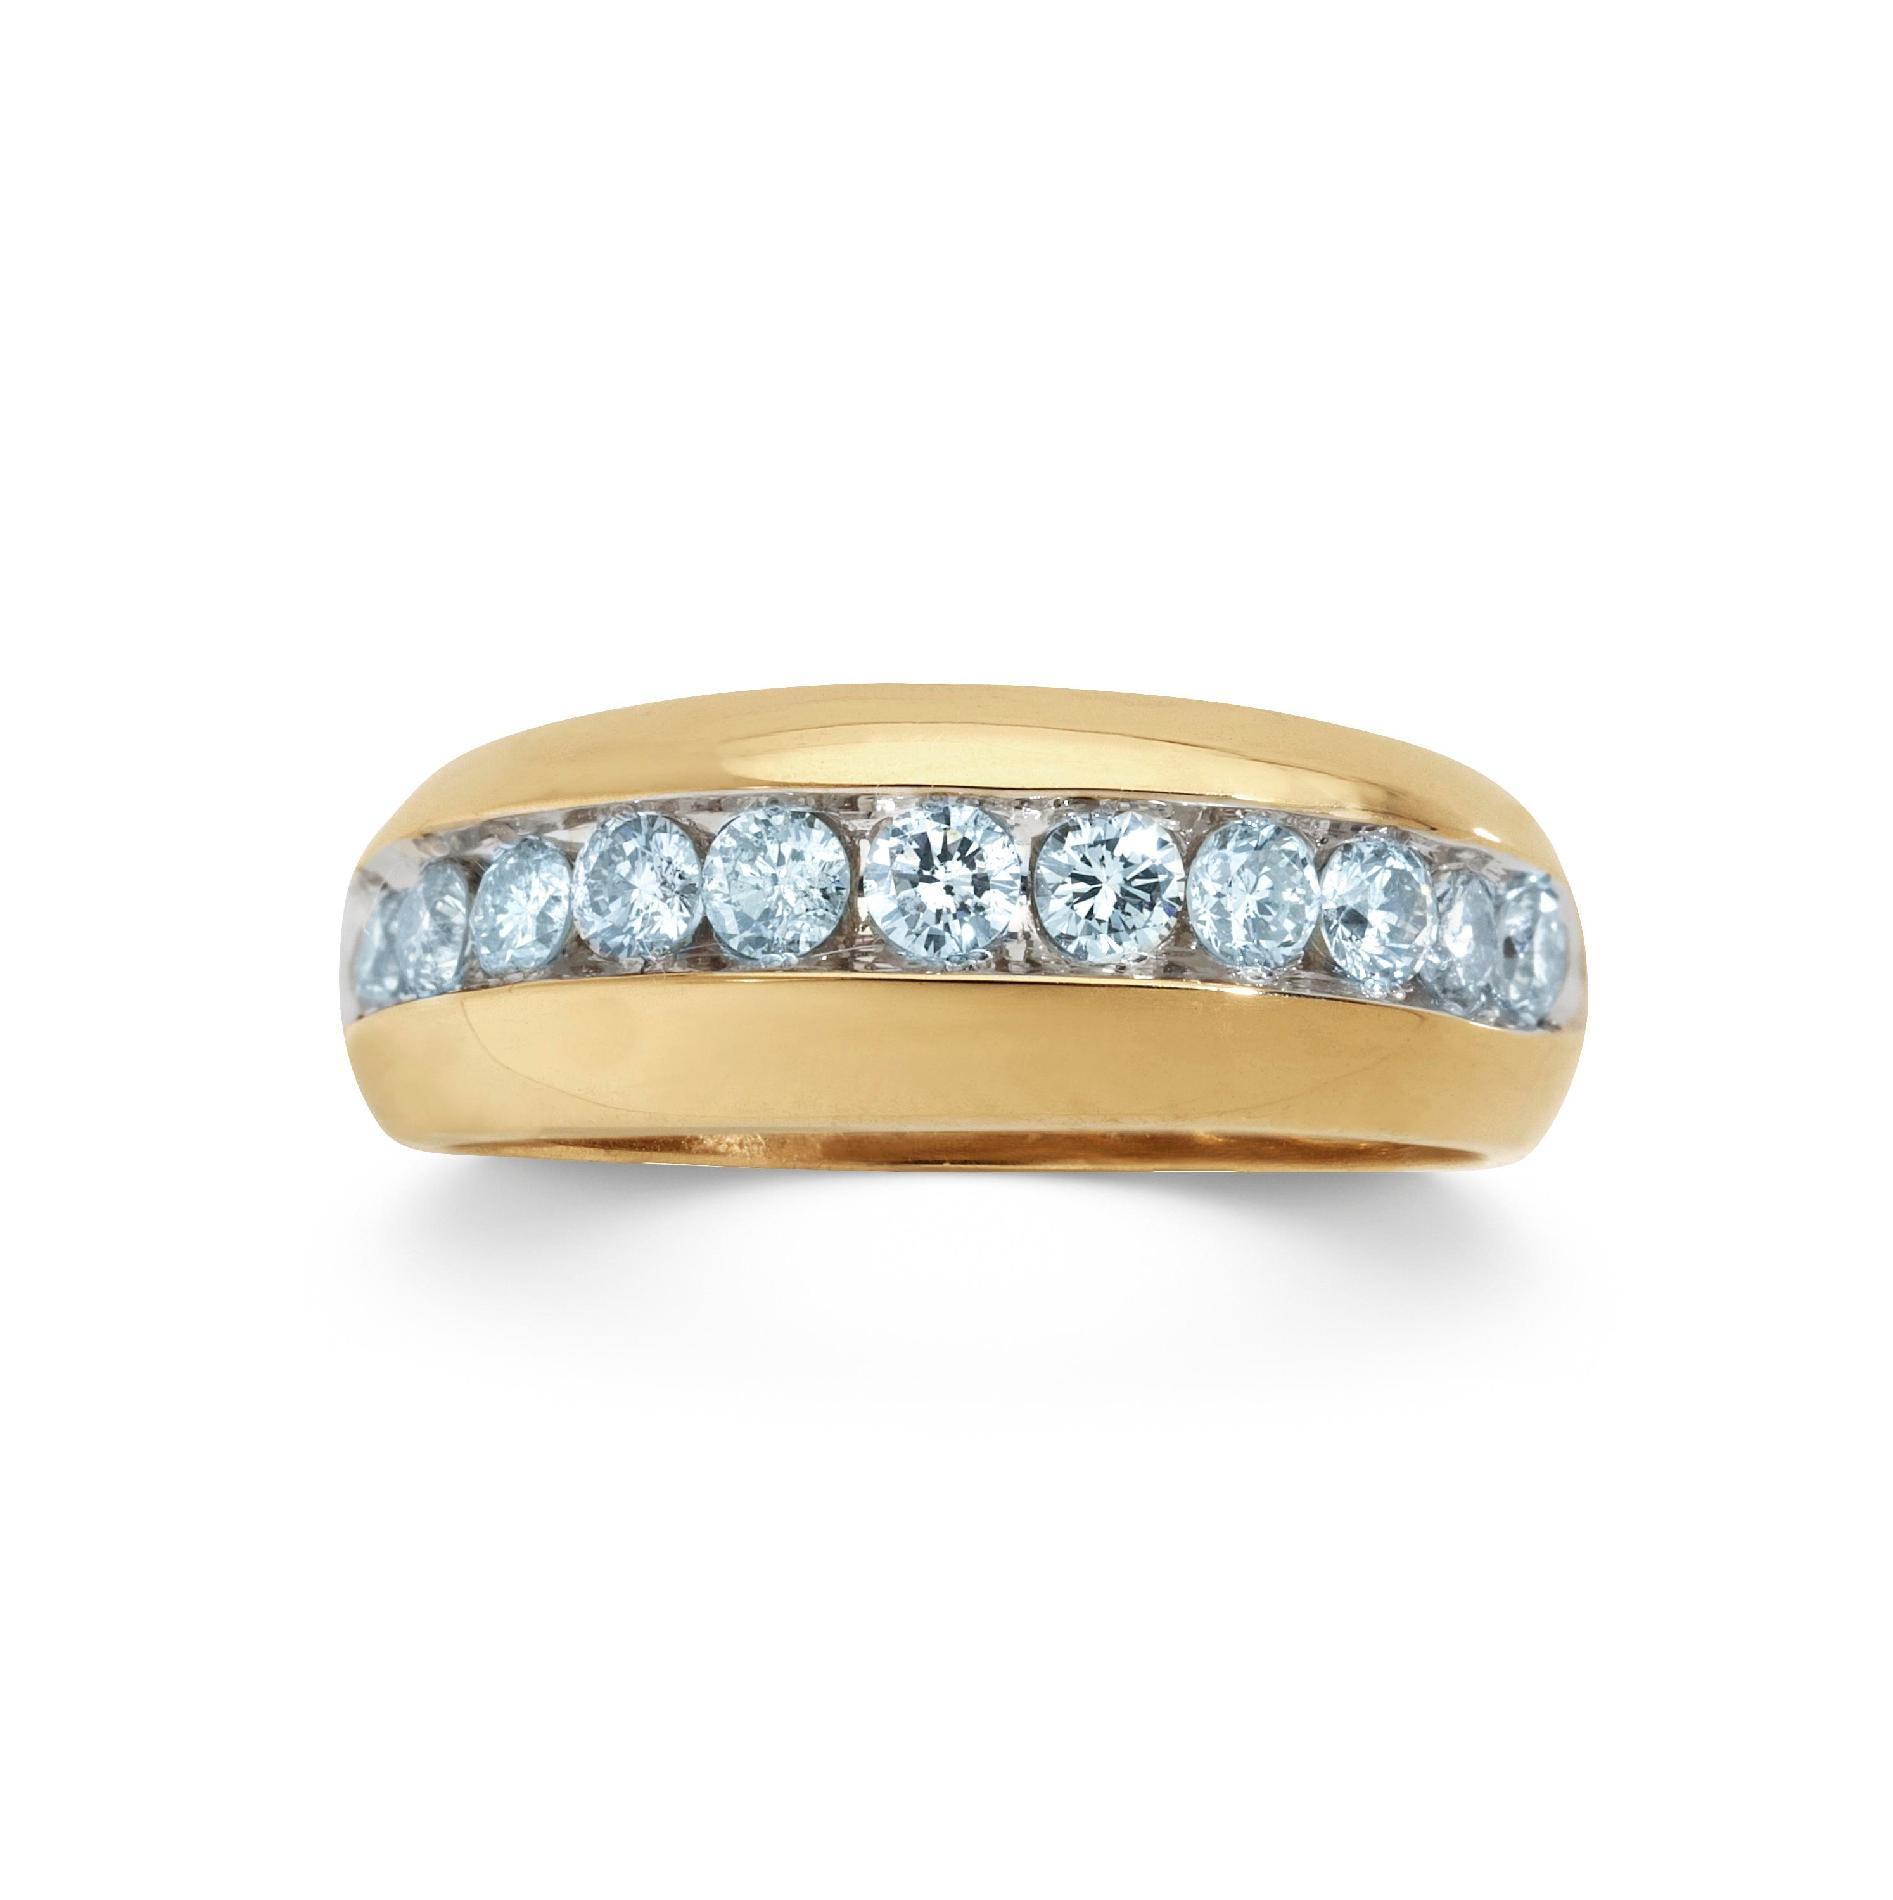 b Occasion Wedding 20bands&filterList Occasion sears wedding rings Men s Wedding Bands